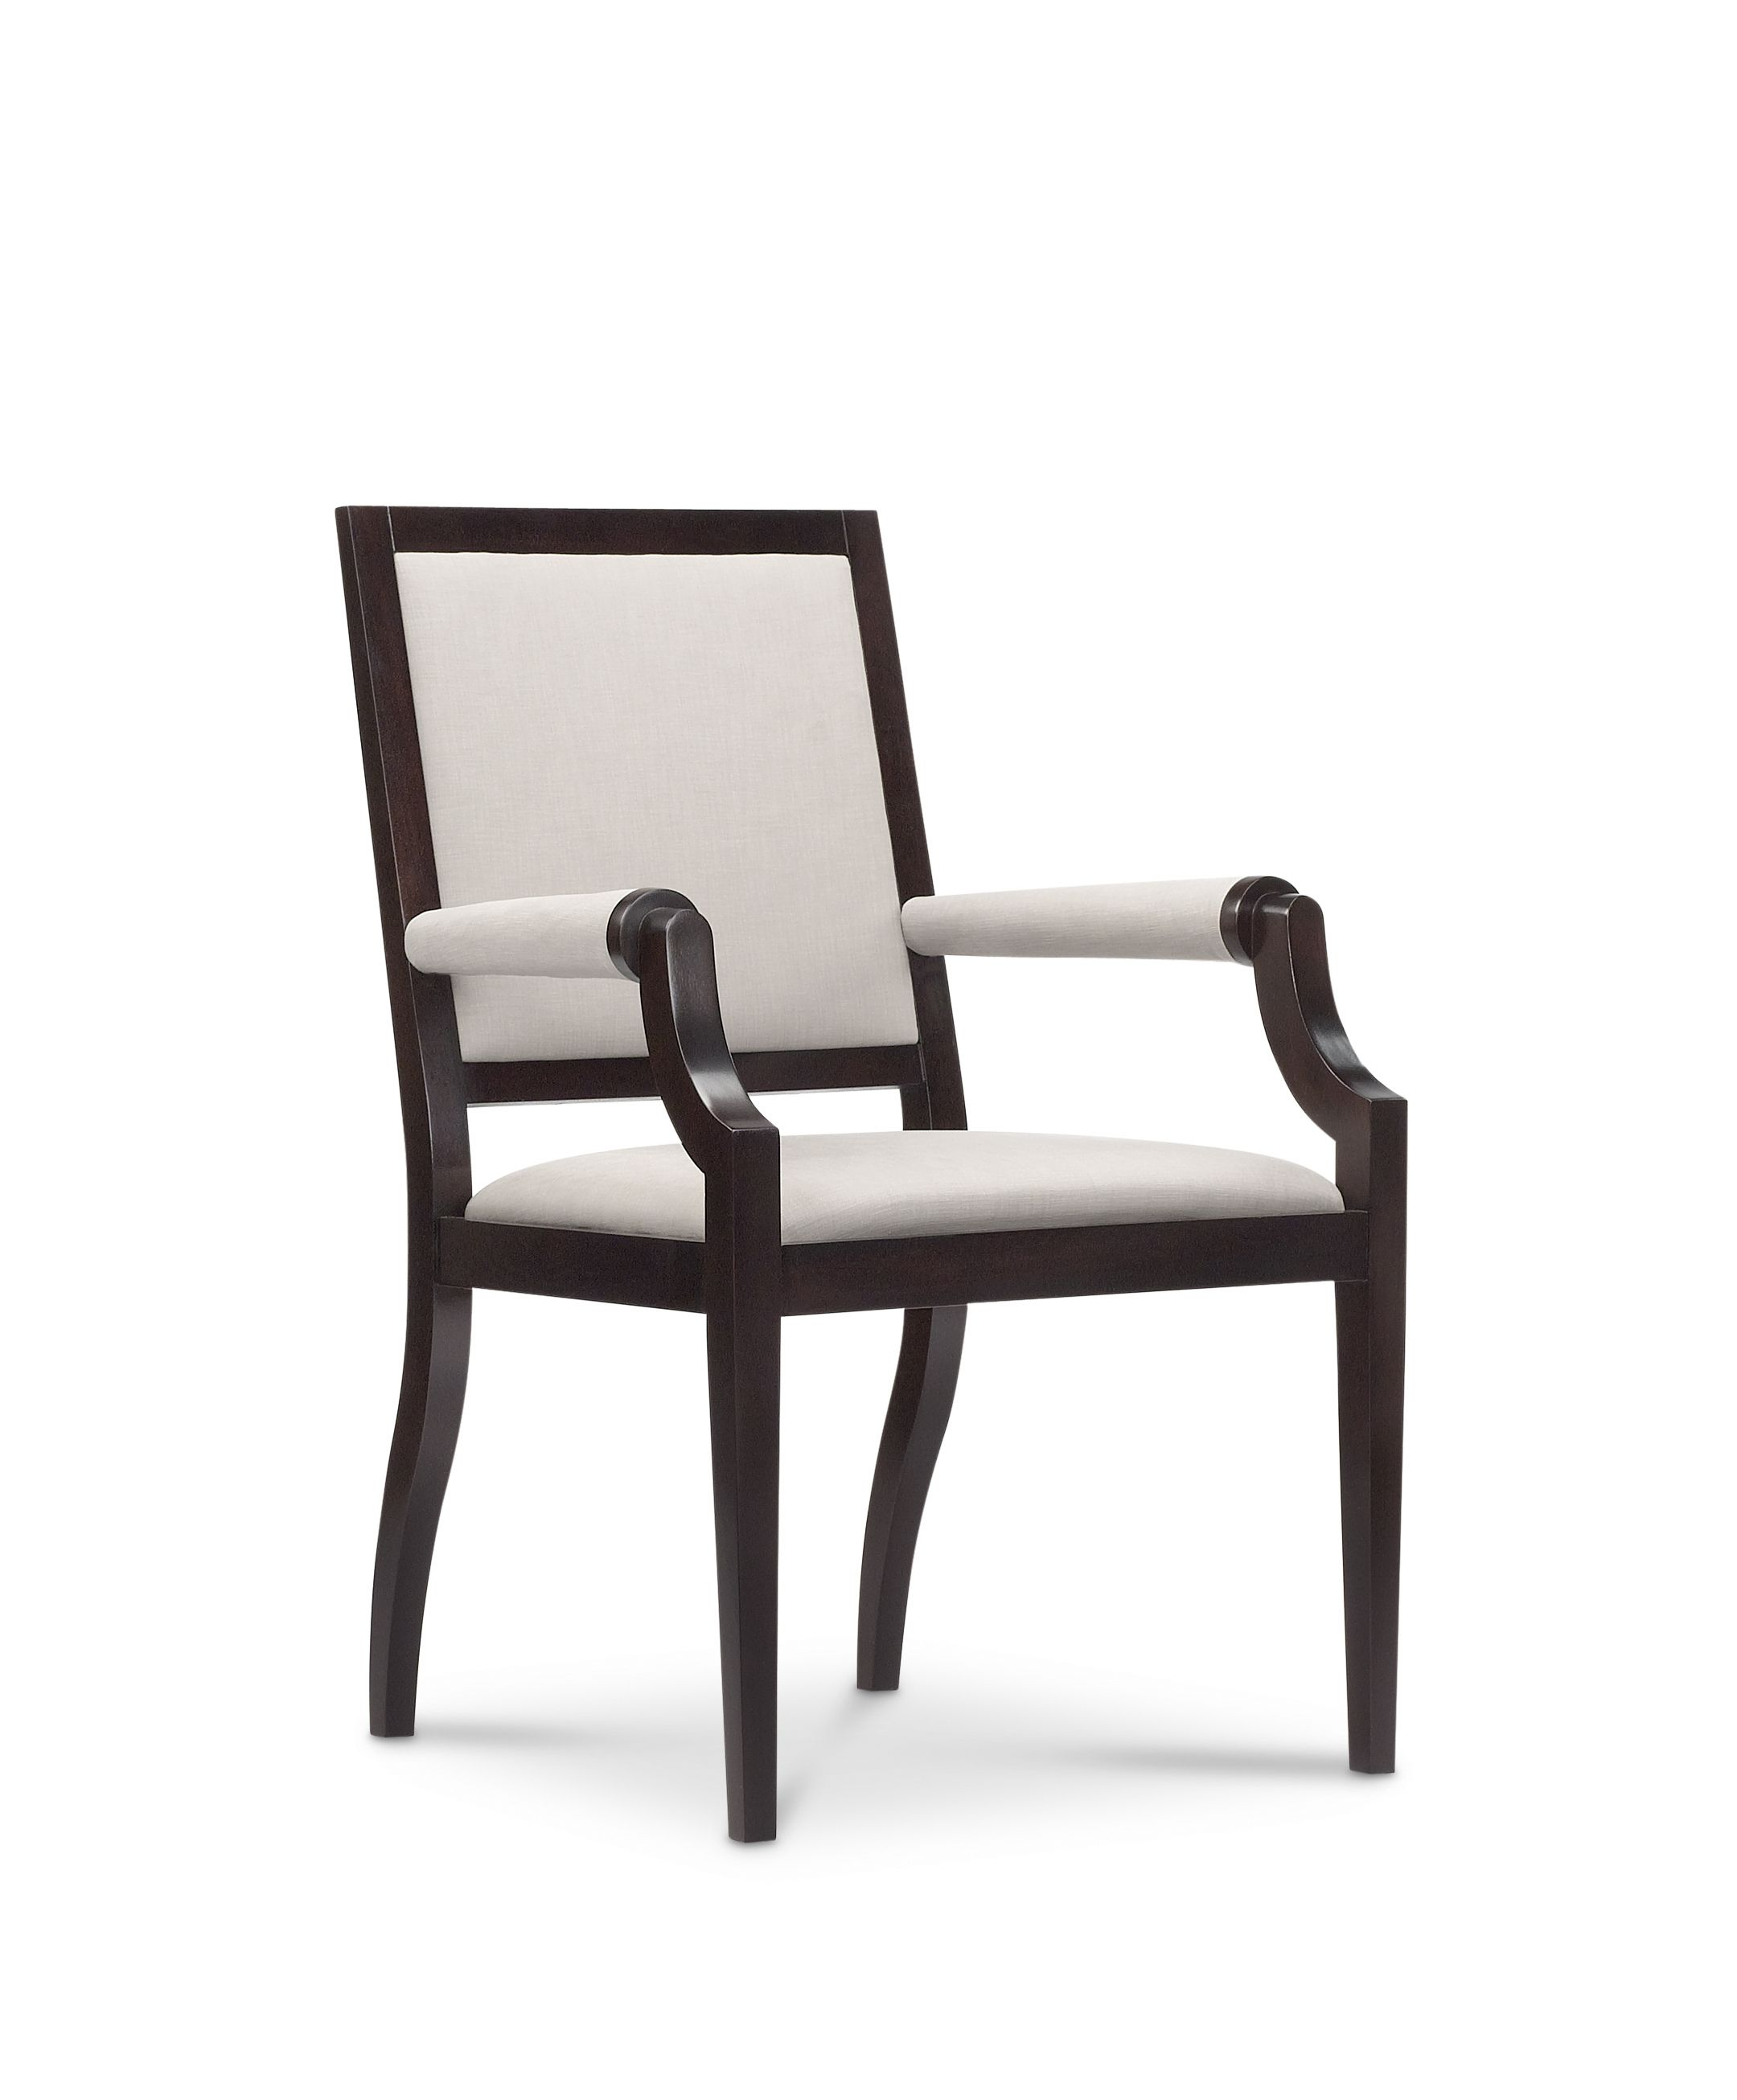 90014 Arm Chair Dining